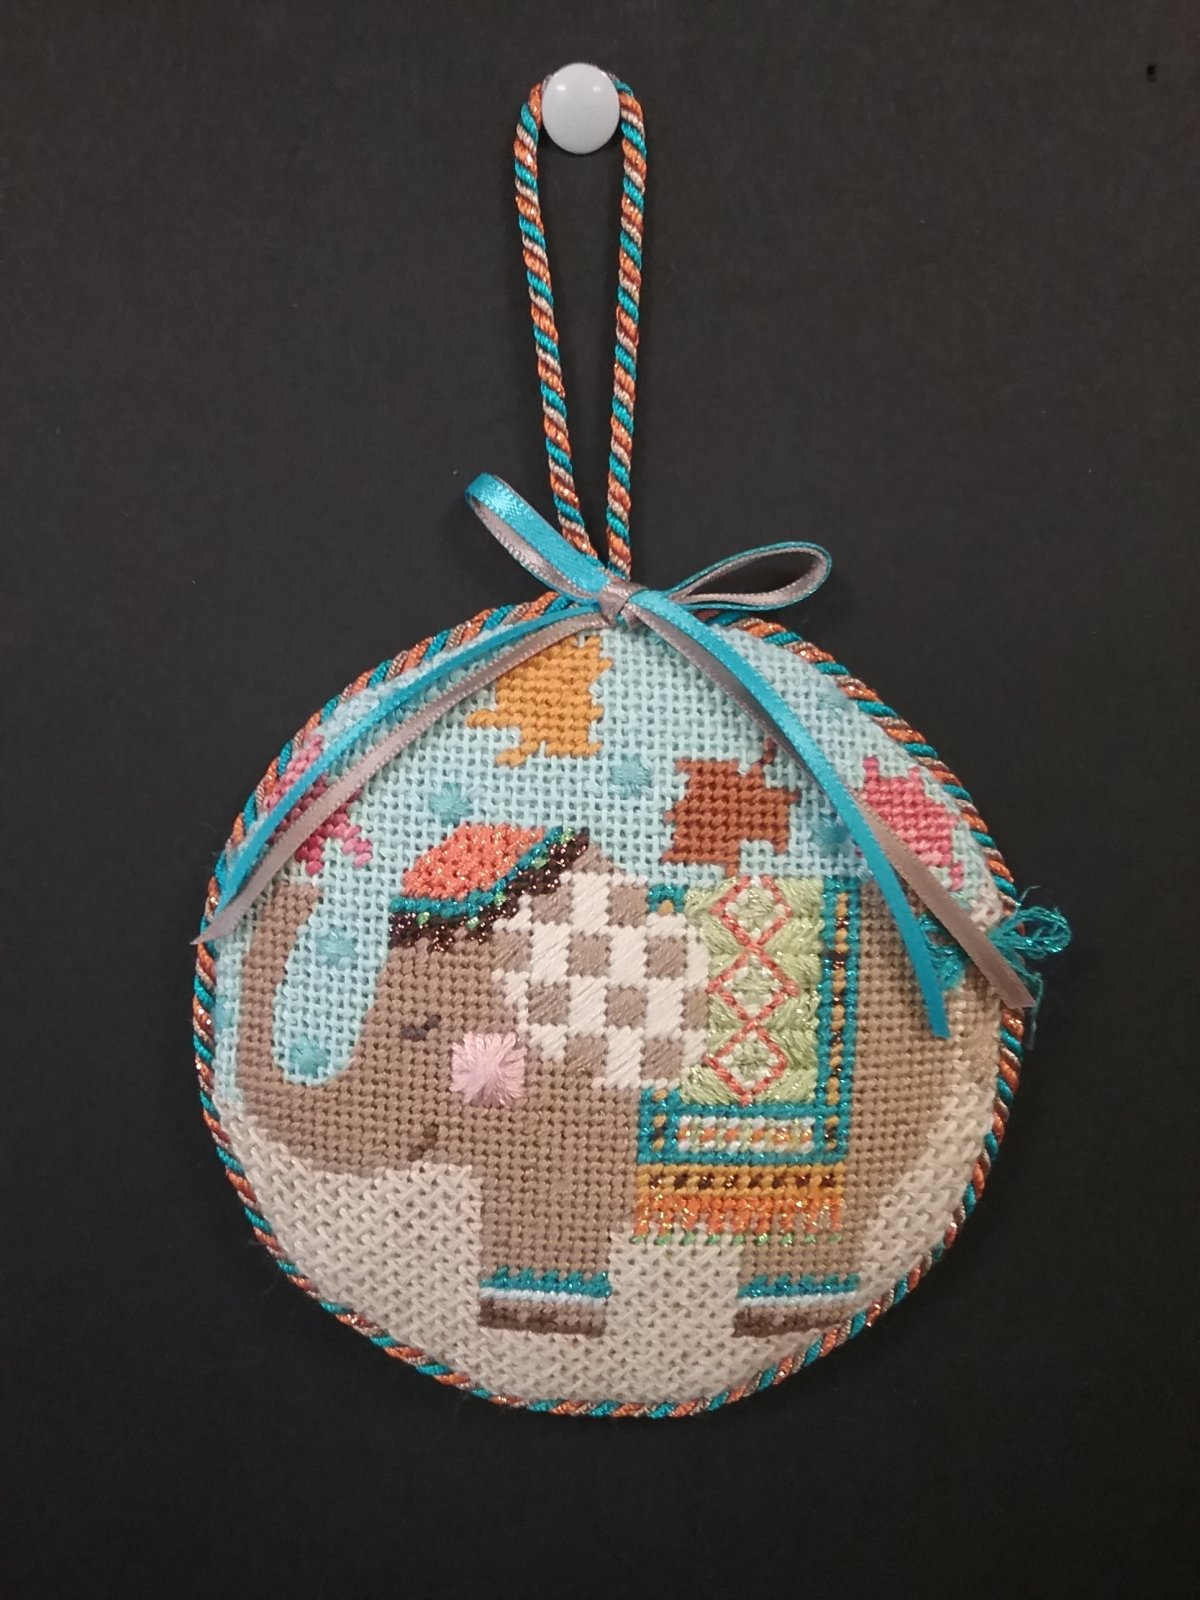 Danji Fall Elephant Ornament- Stitched by Cindy C.